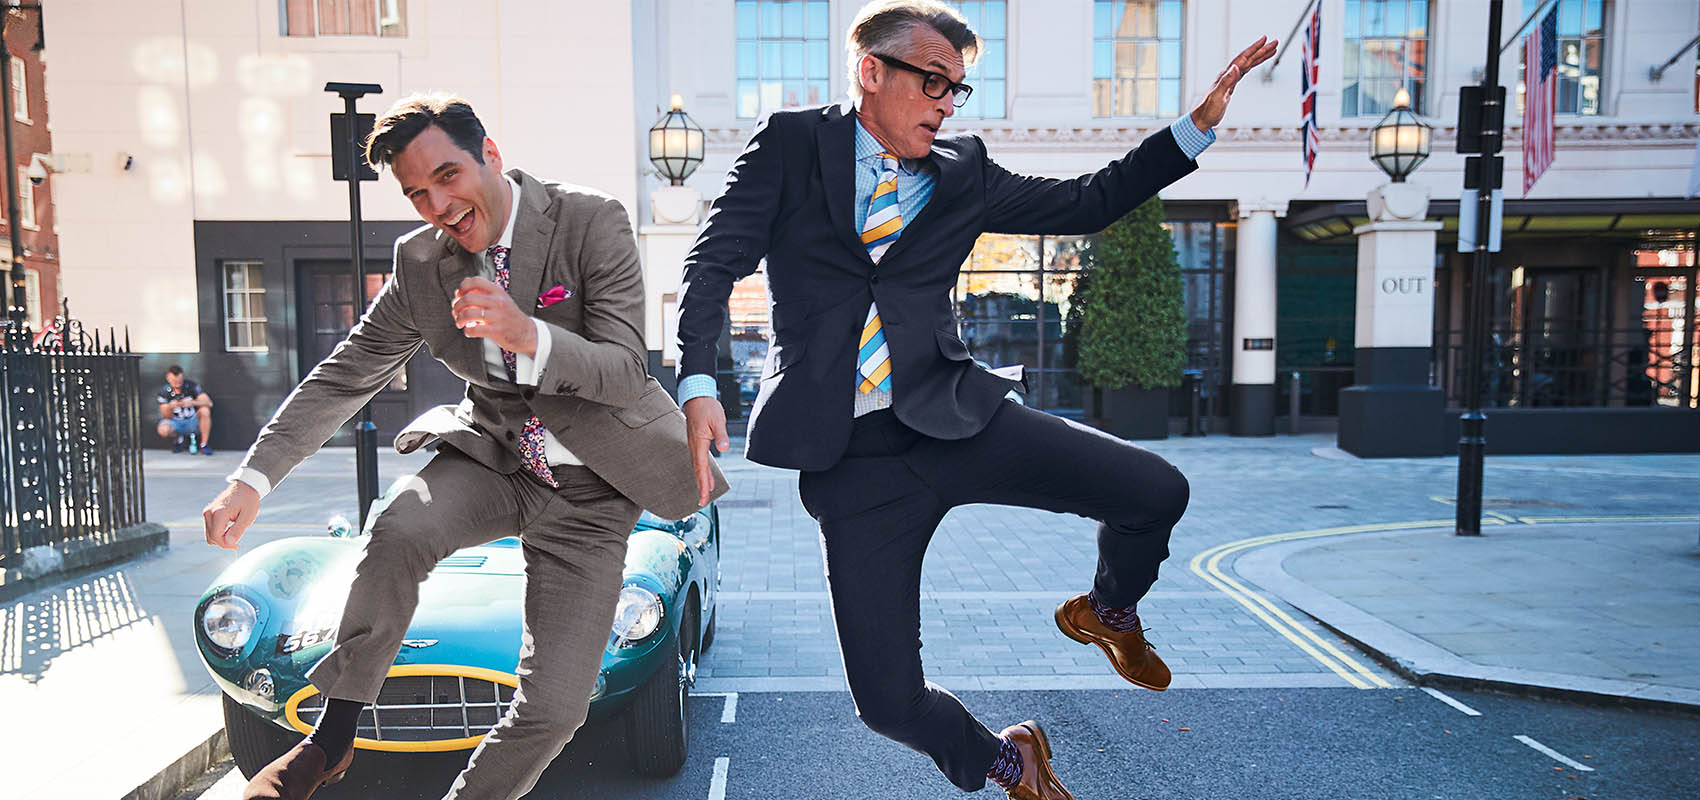 2 models jumping in Suit Trousers